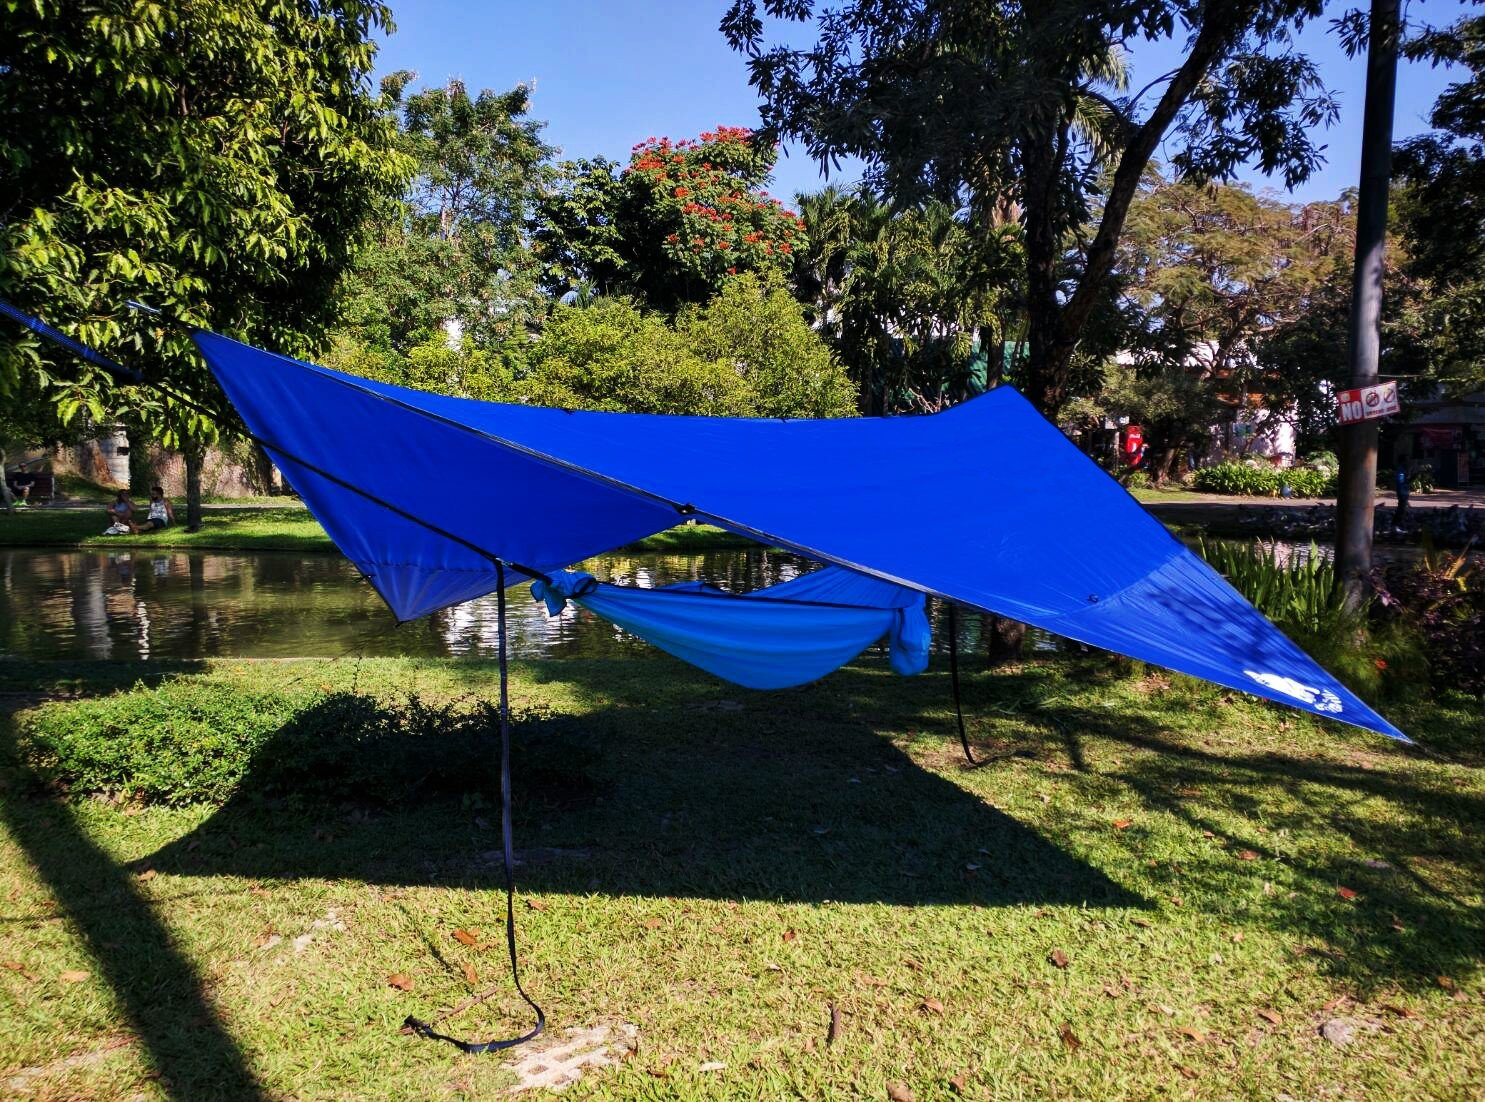 amazon     chill gorilla 12 u0027 hammock rain fly tent tarp waterproof camping shelter  essential survival gear  stakes included  lightweight  easy to setup  amazon     chill gorilla 12 u0027 hammock rain fly tent tarp      rh   amazon